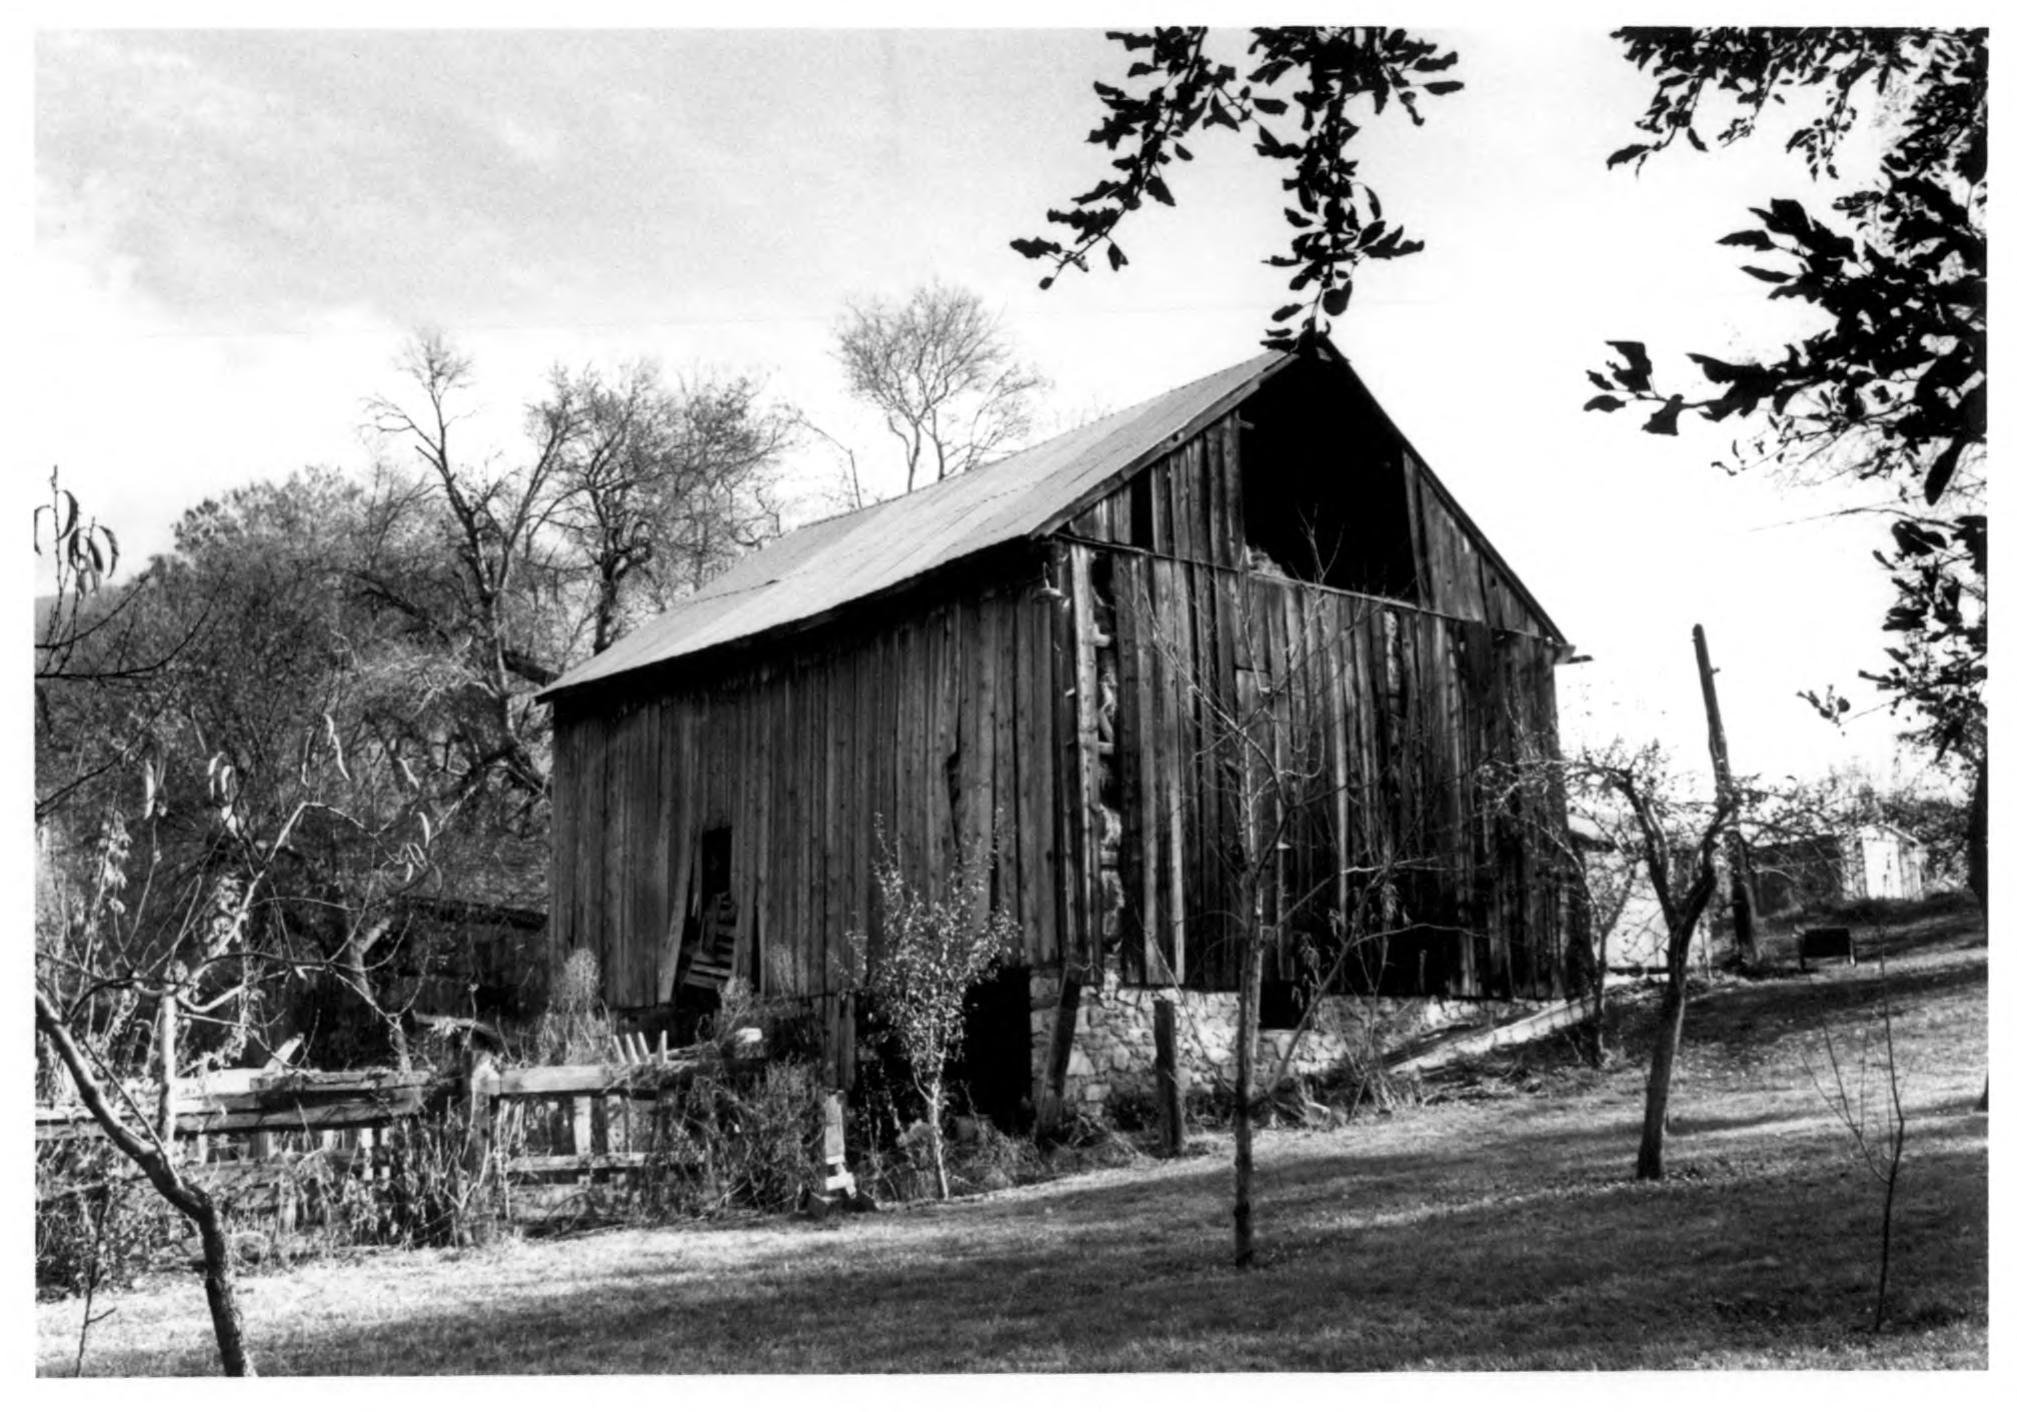 District's only barn on the National